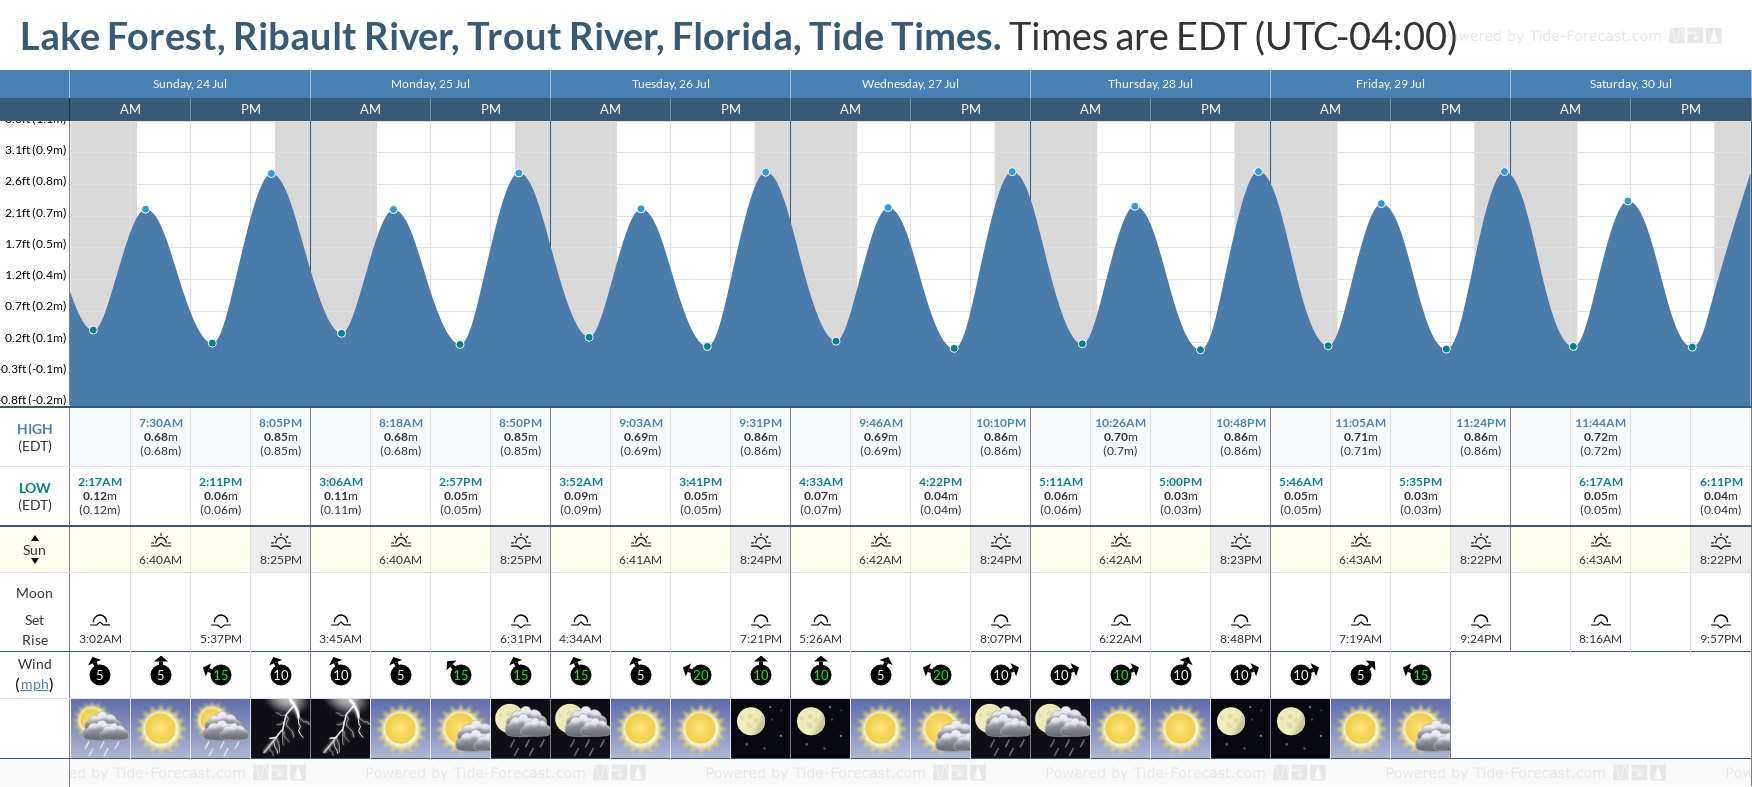 Lake Forest, Ribault River, Trout River, Florida Tide Chart including high and low tide tide times for the next 7 days